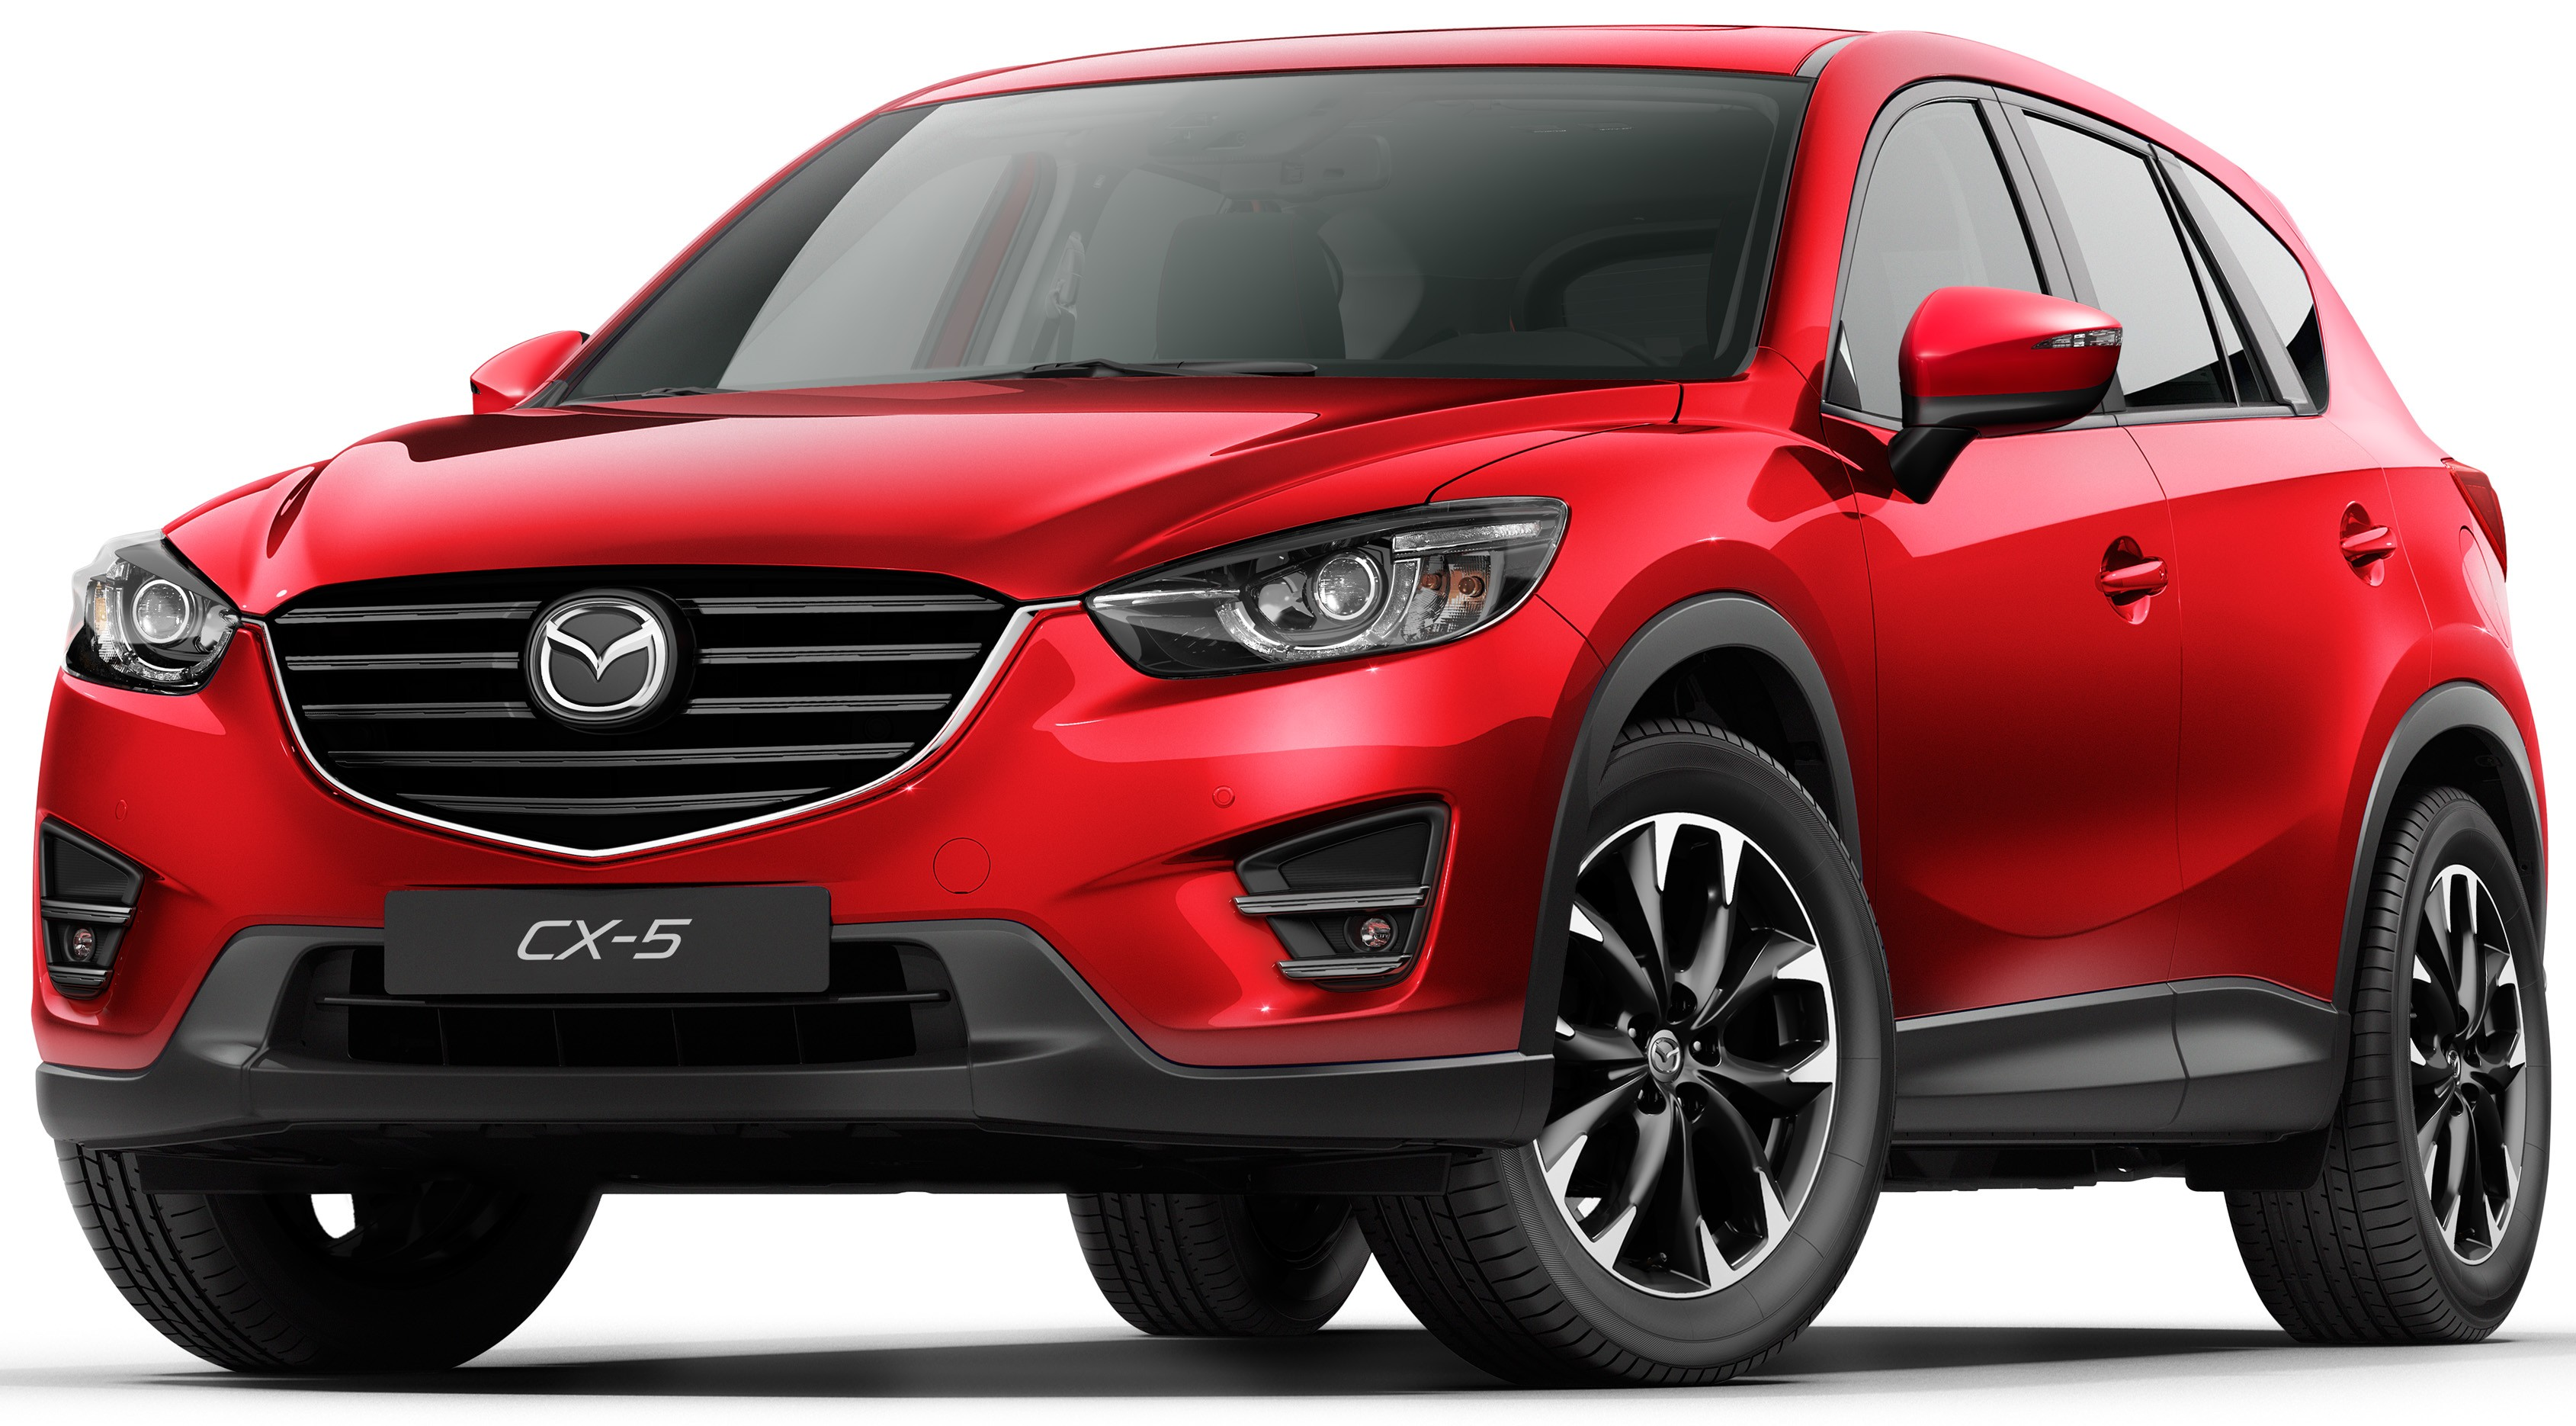 Mazda Cx 5 Facelift Appears At La With Minor Upgrades Paul Tan Image 289652